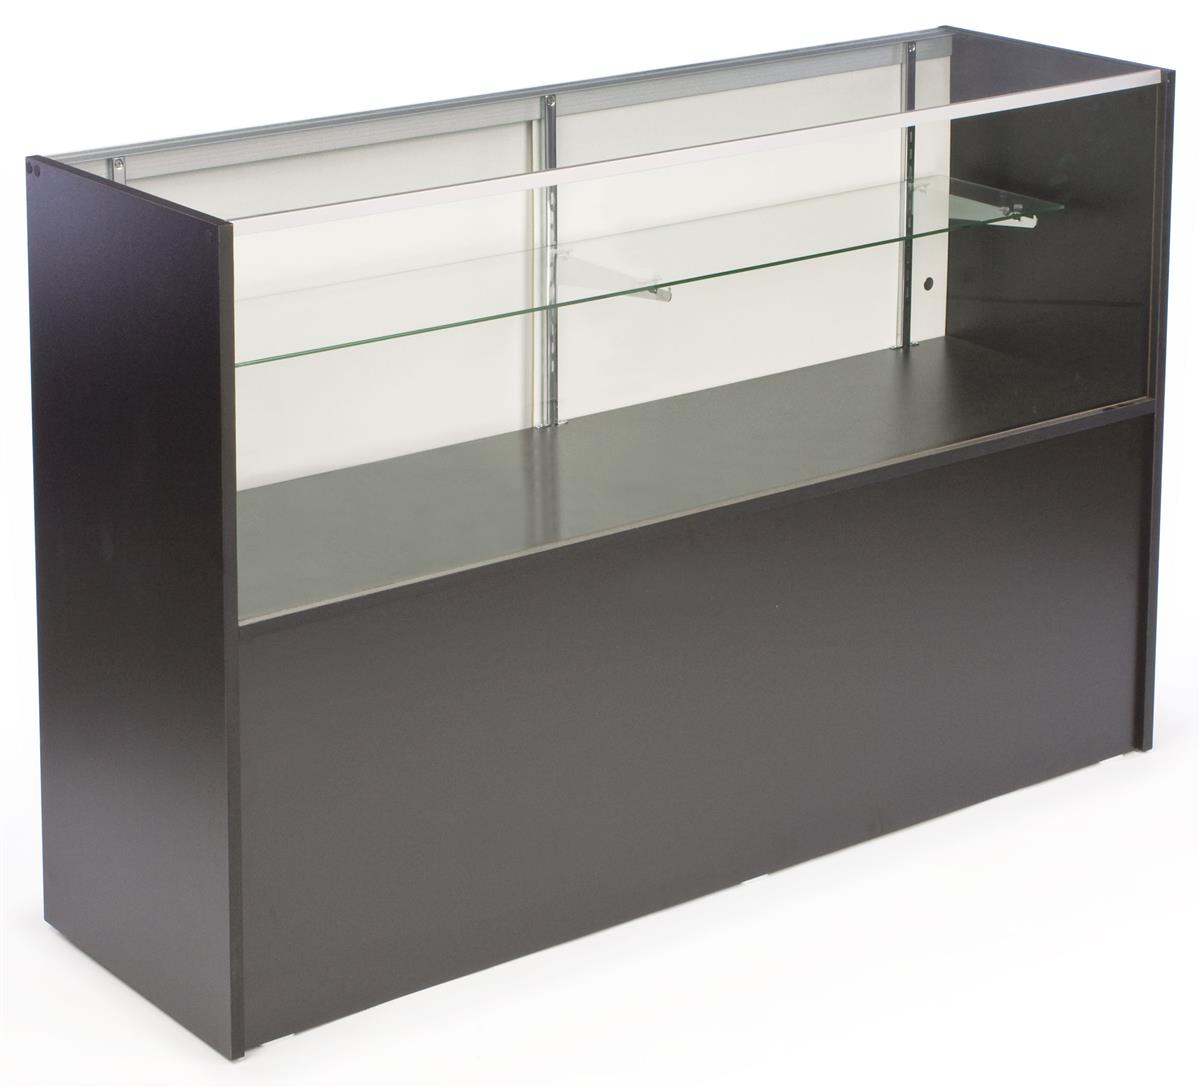 Display Case Adjustable Glass Shelves W Sliding Doors